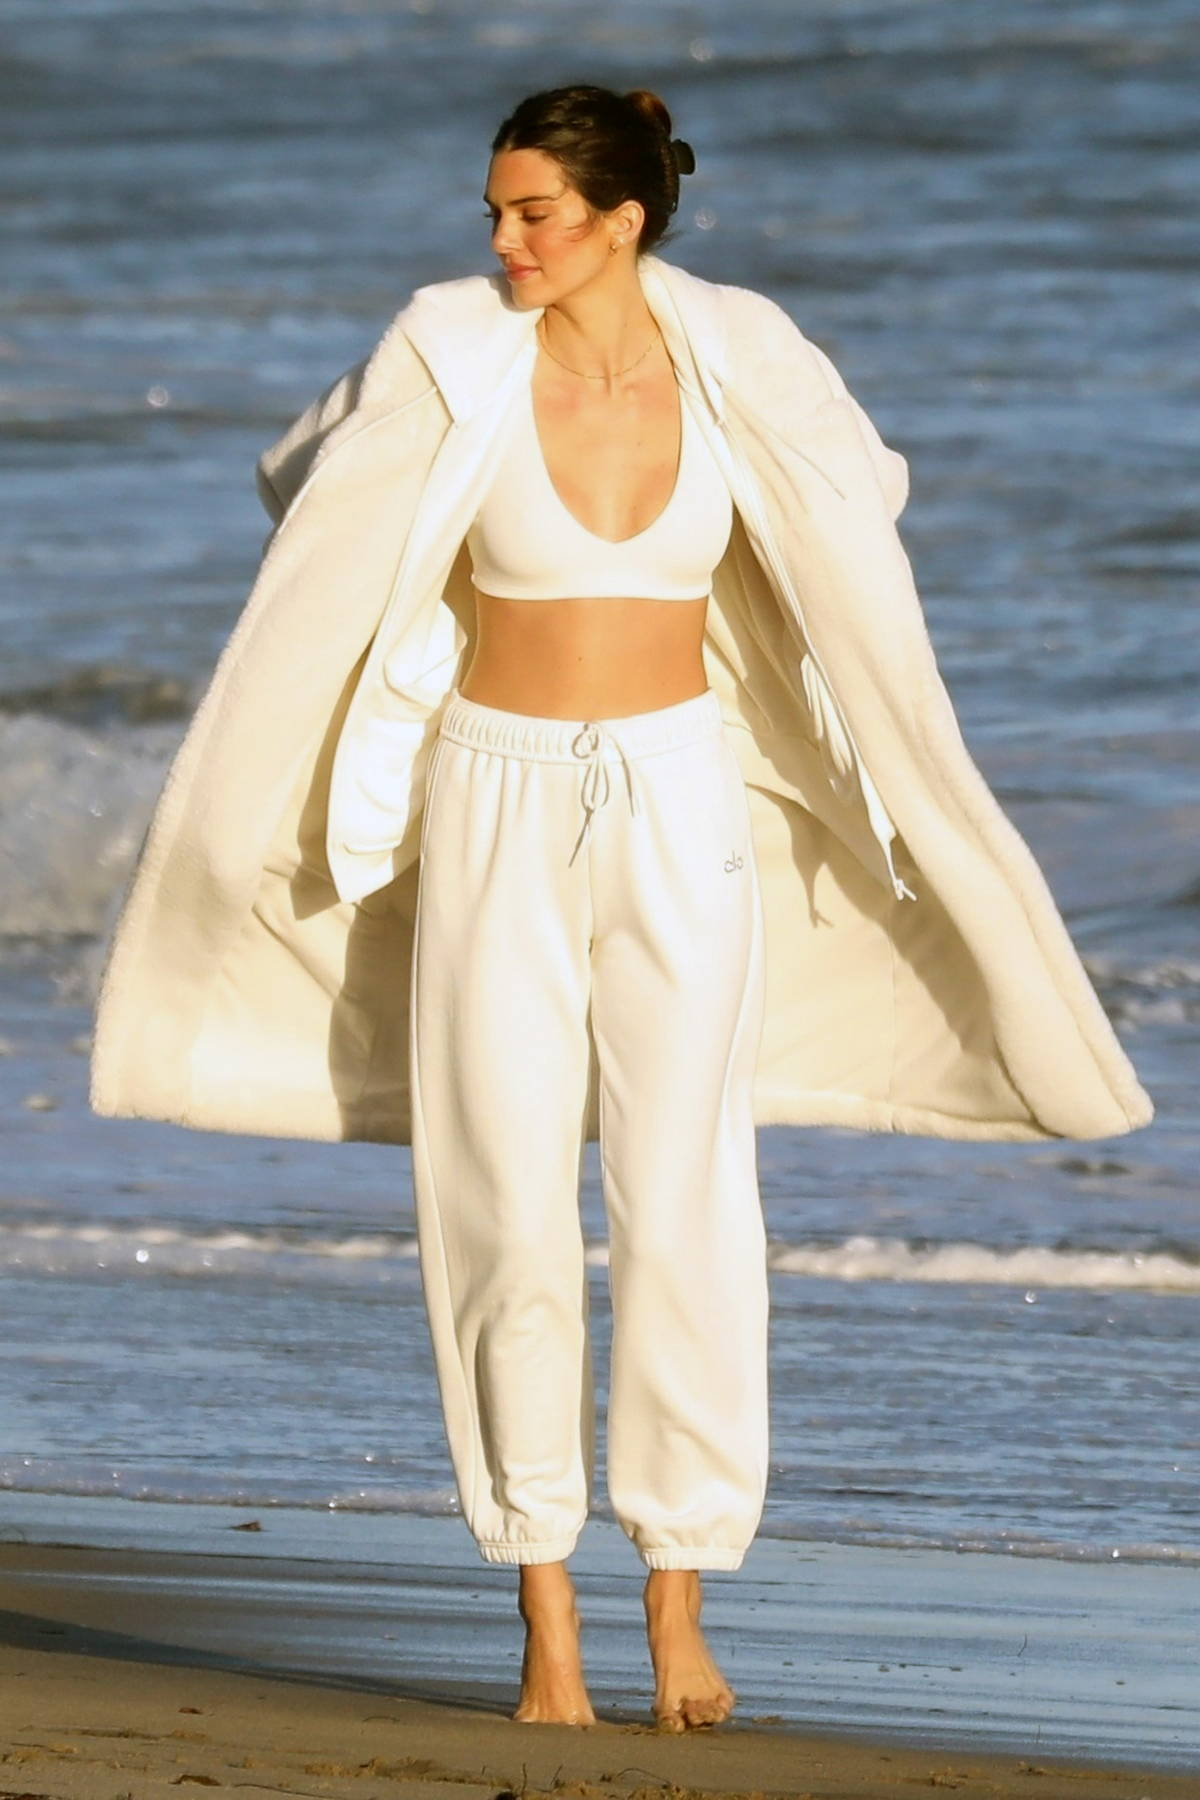 Kendall Jenner looks radiant during a beach photoshoot for Alo Yoga in Malibu, California